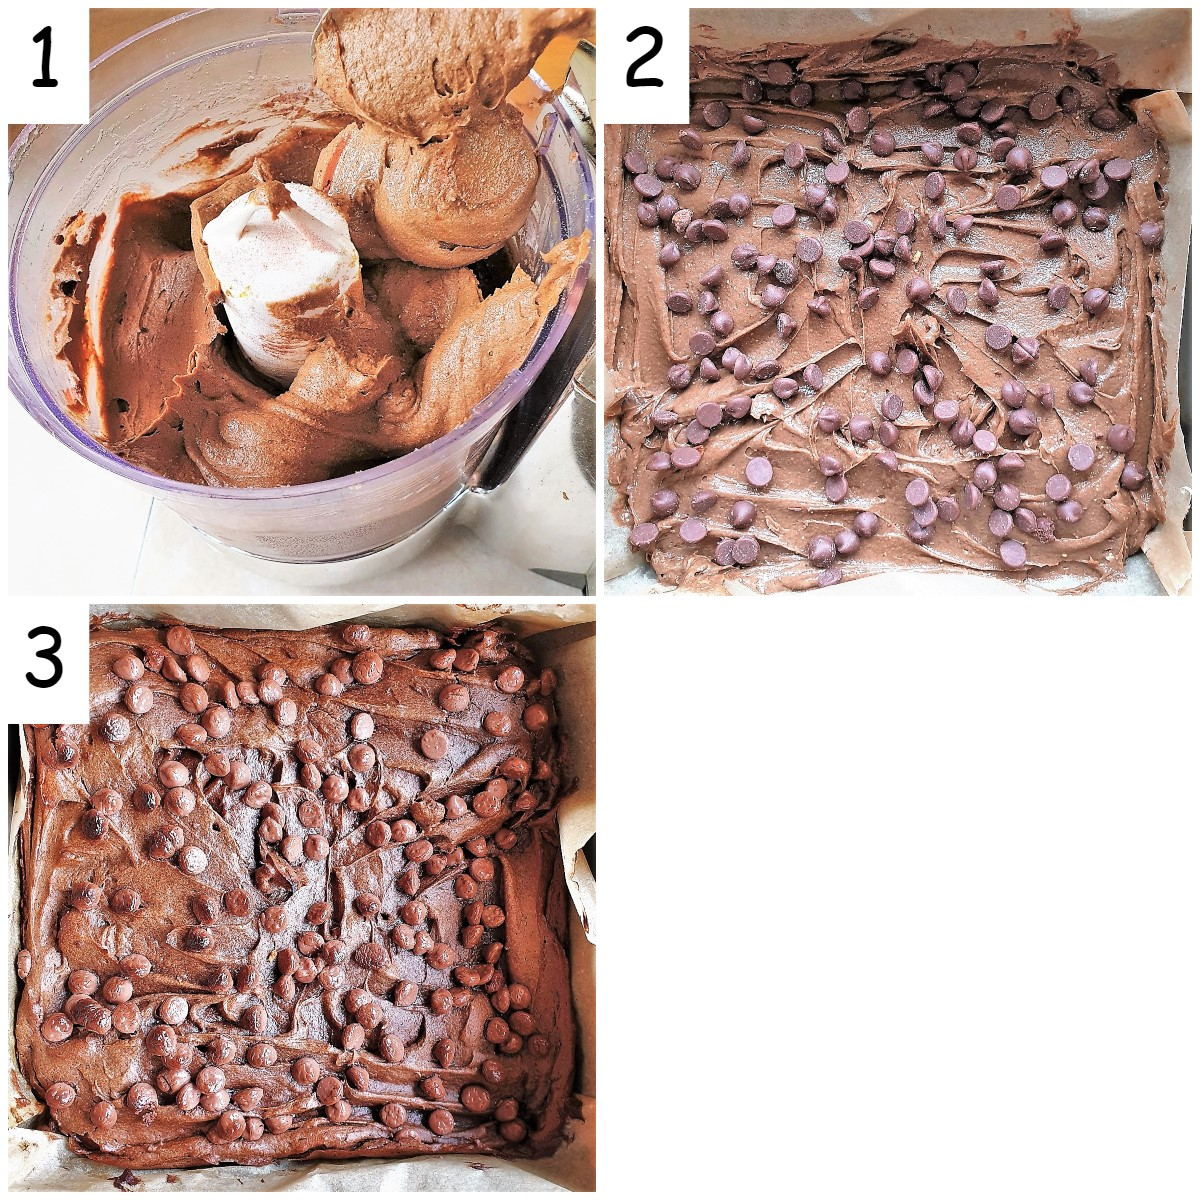 A collate of 3 images showing the brownie batter mixture being placed in a baking tin.